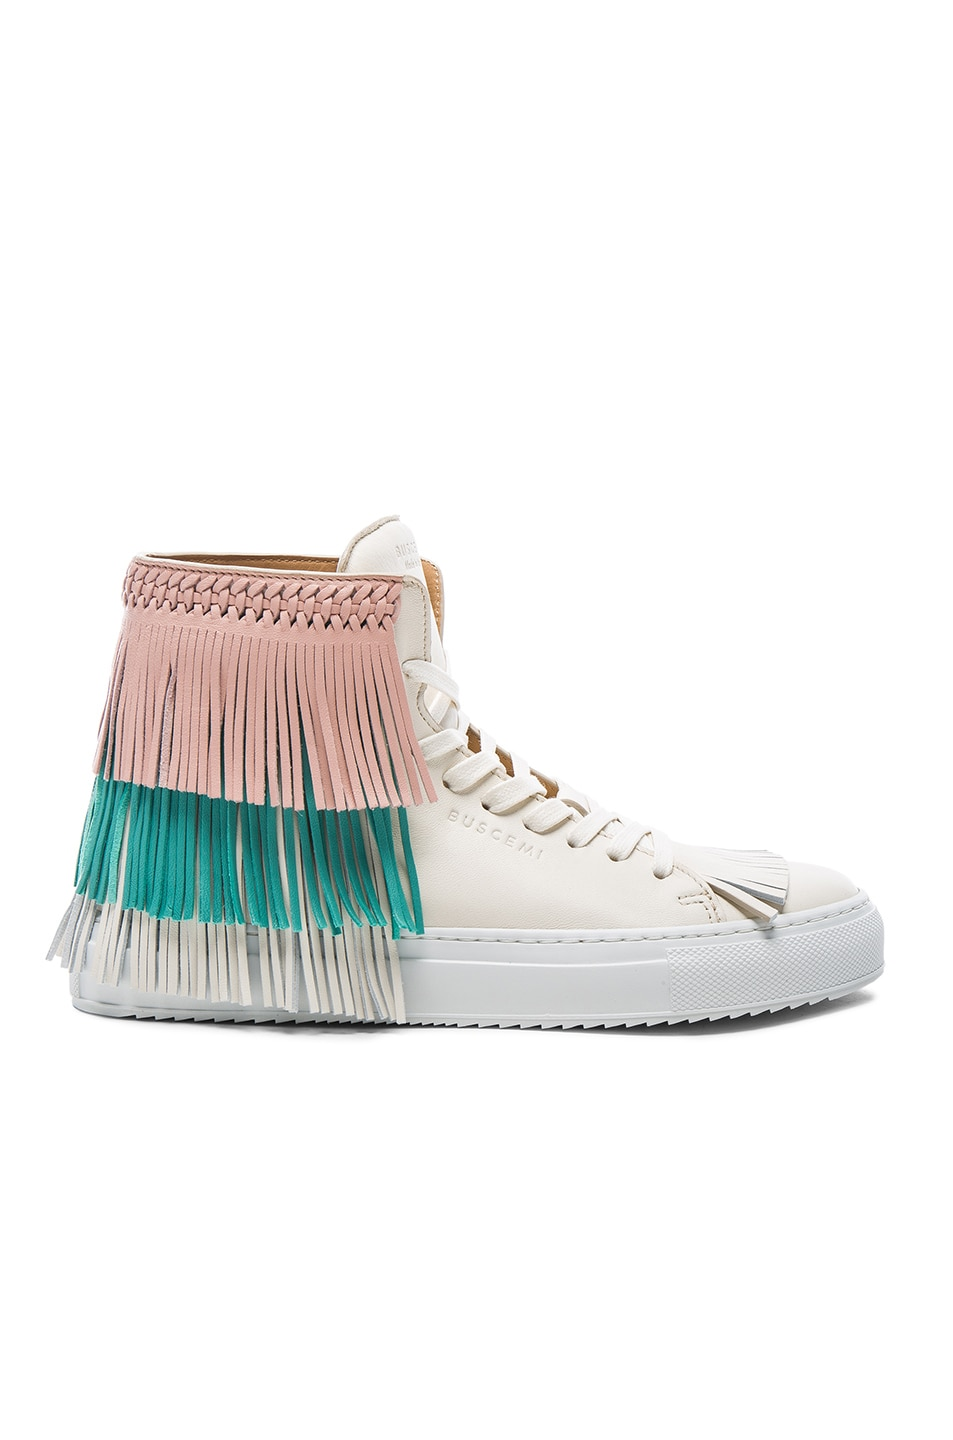 Image 1 of Buscemi 125MM Leather New Fringe Sneakers in Cream, Pink & Aqua Marine